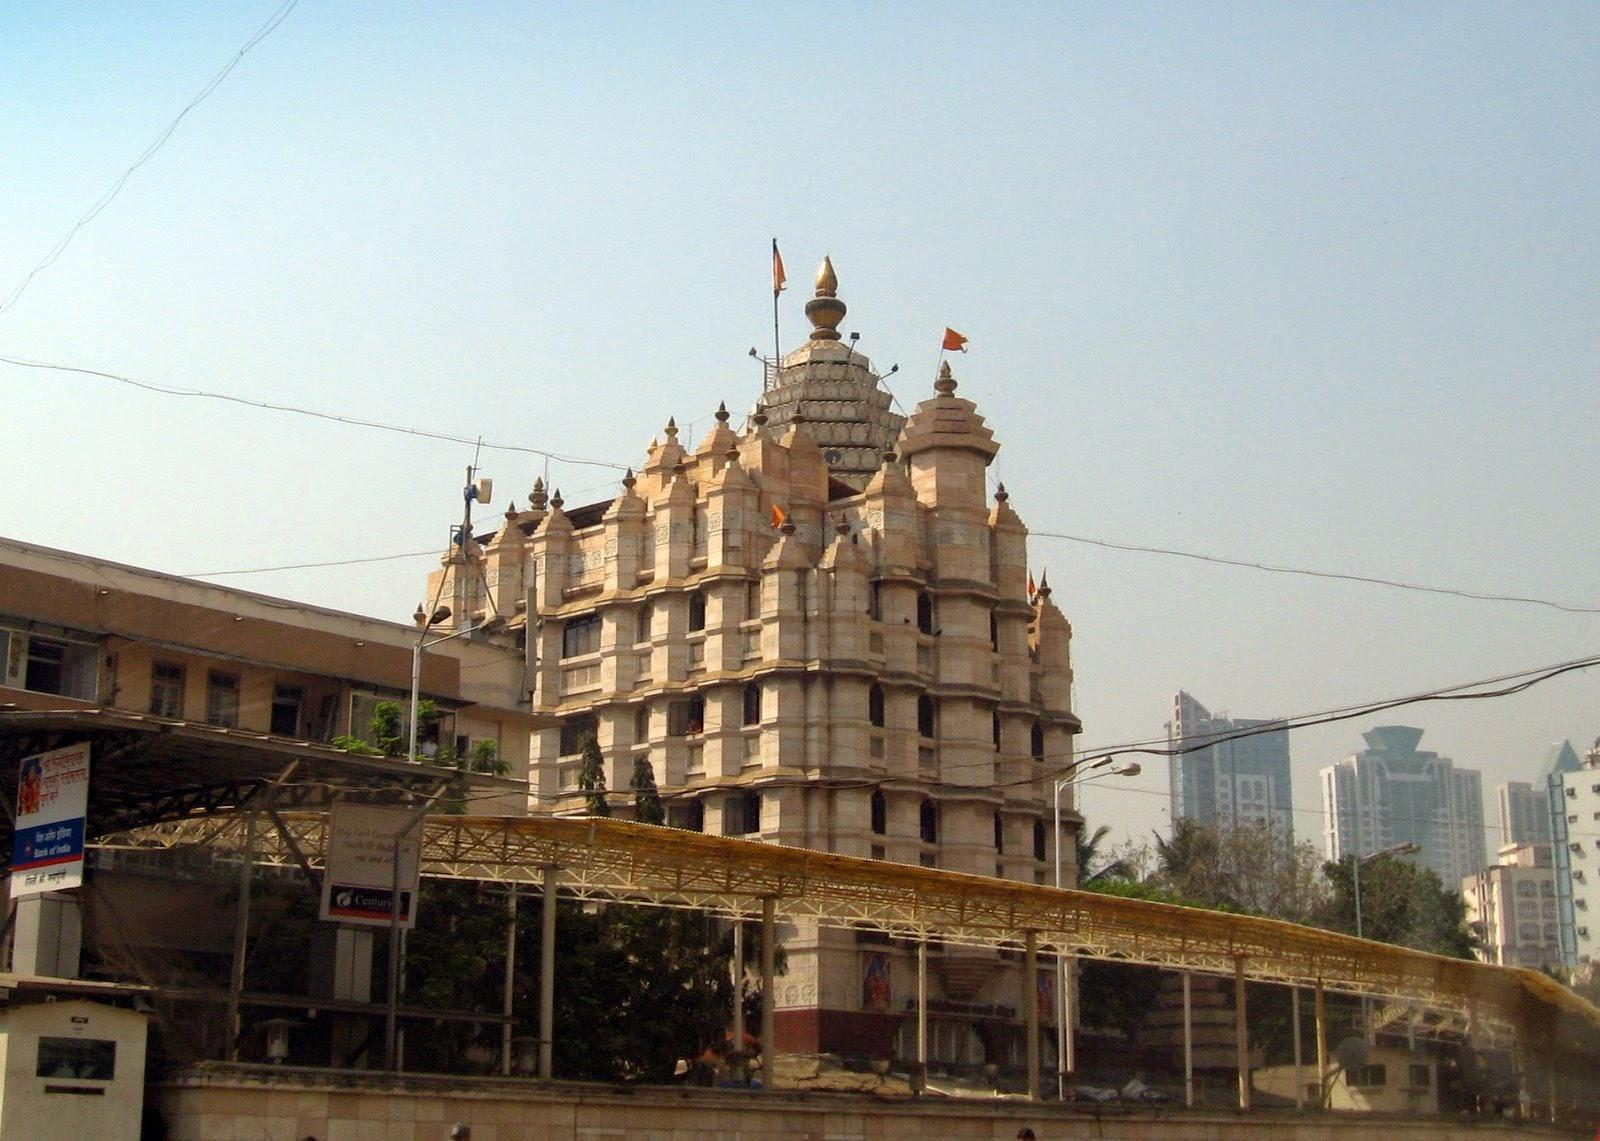 http://tours.irtb.co.in/wp-content/uploads/2014/11/Siddhivinayak-Temple-Mumbai.jpg